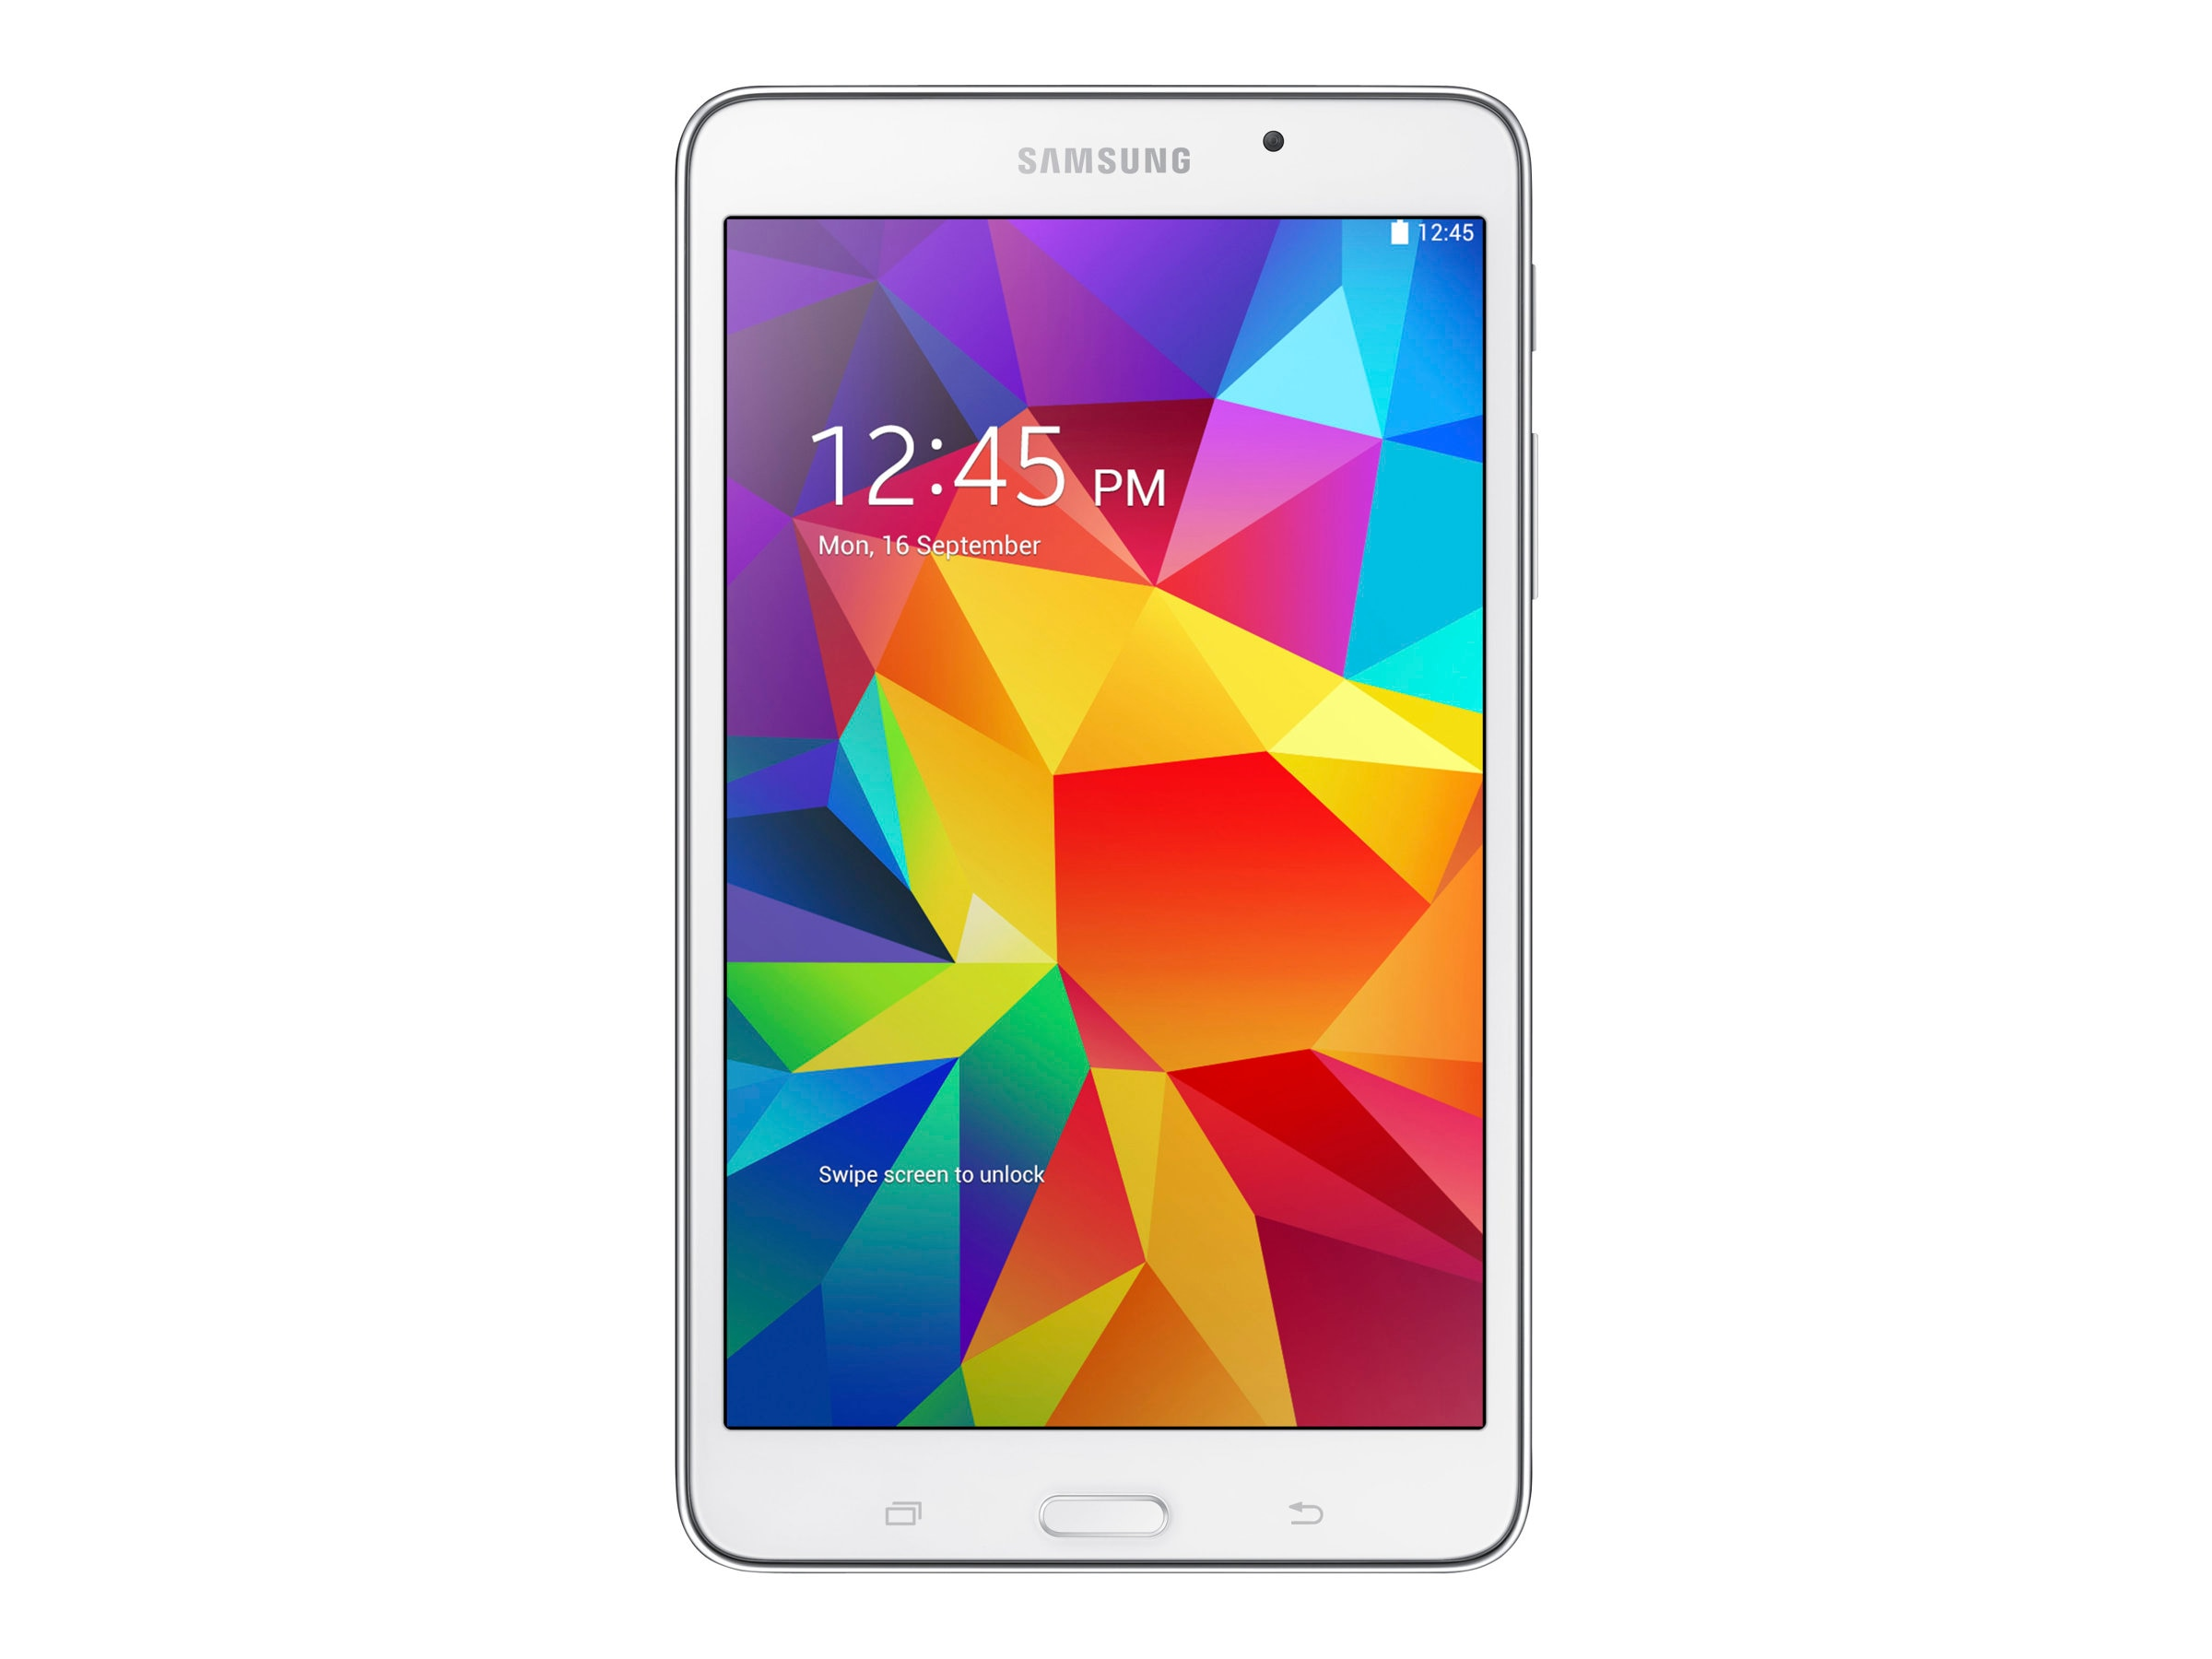 Samsung Galaxy Tab 4 1.2GHz processor Android 4.4 (KitKat)